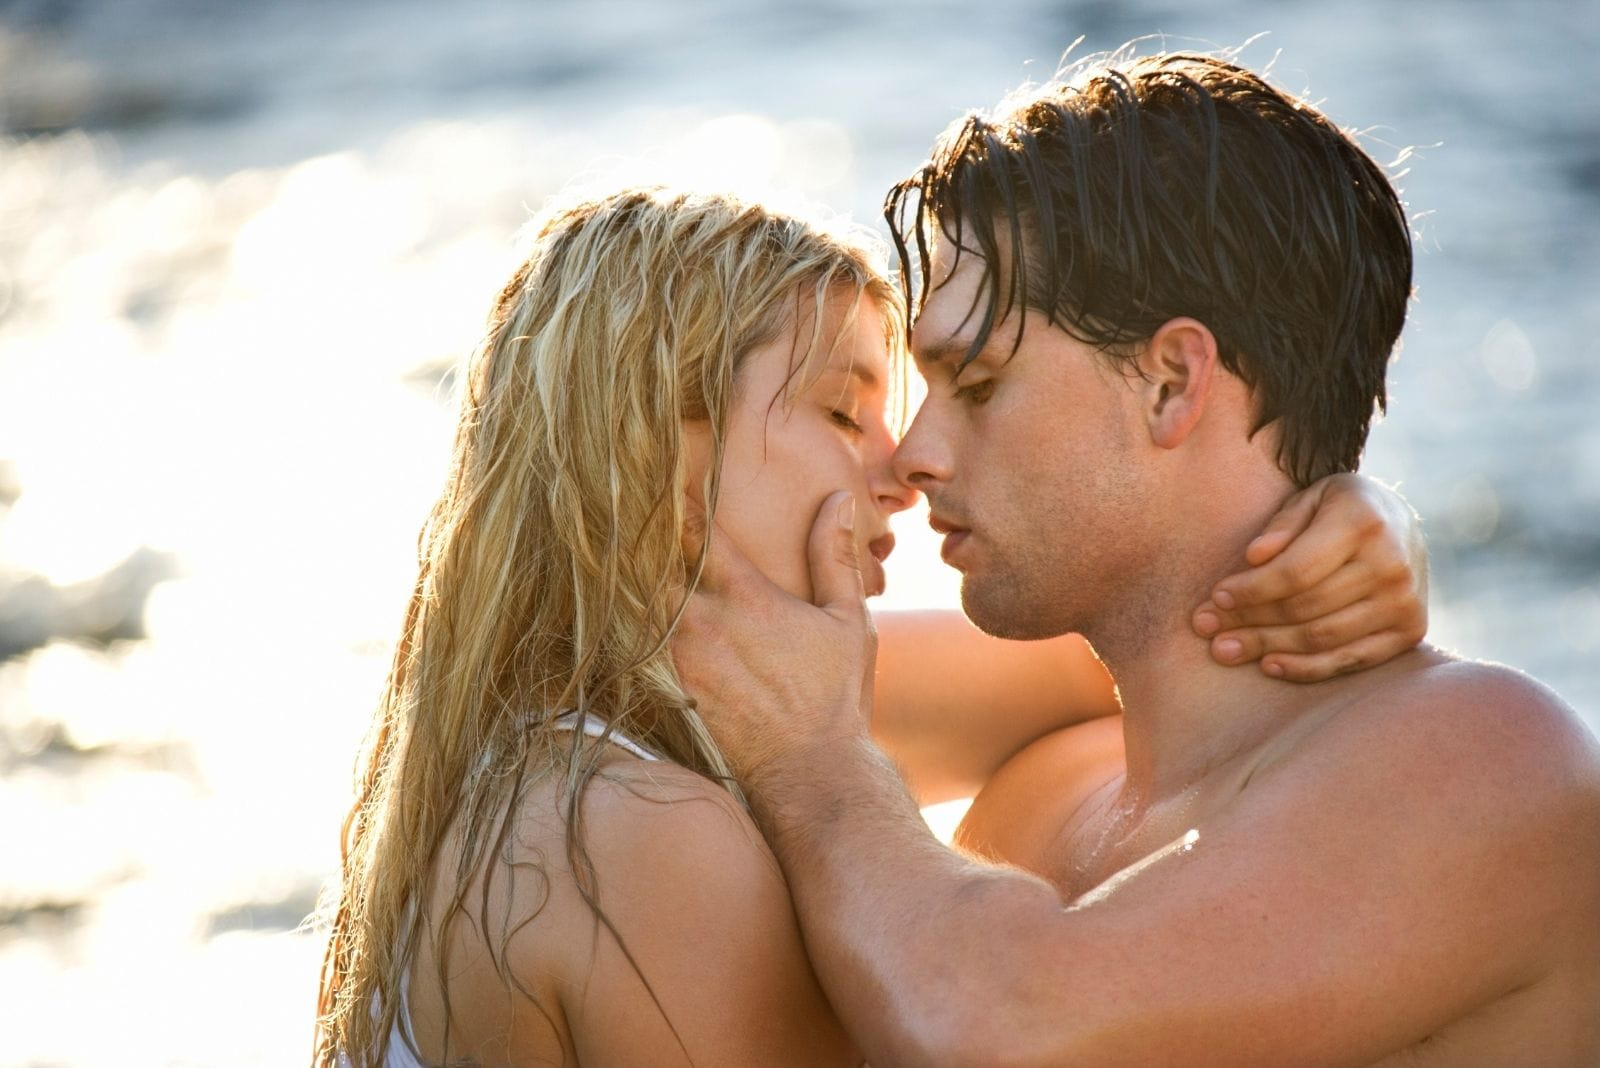 wet couple kissing in the beach with man gently grabbing woman's face